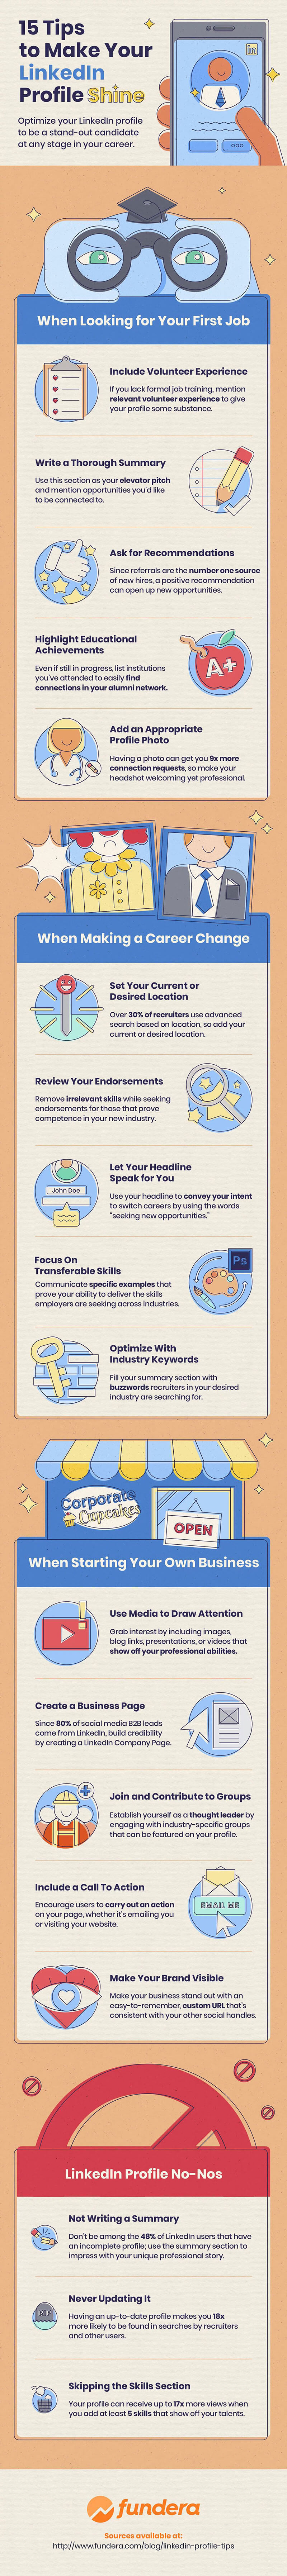 Infographic: 15 tips to make your LinkedIn profile shine